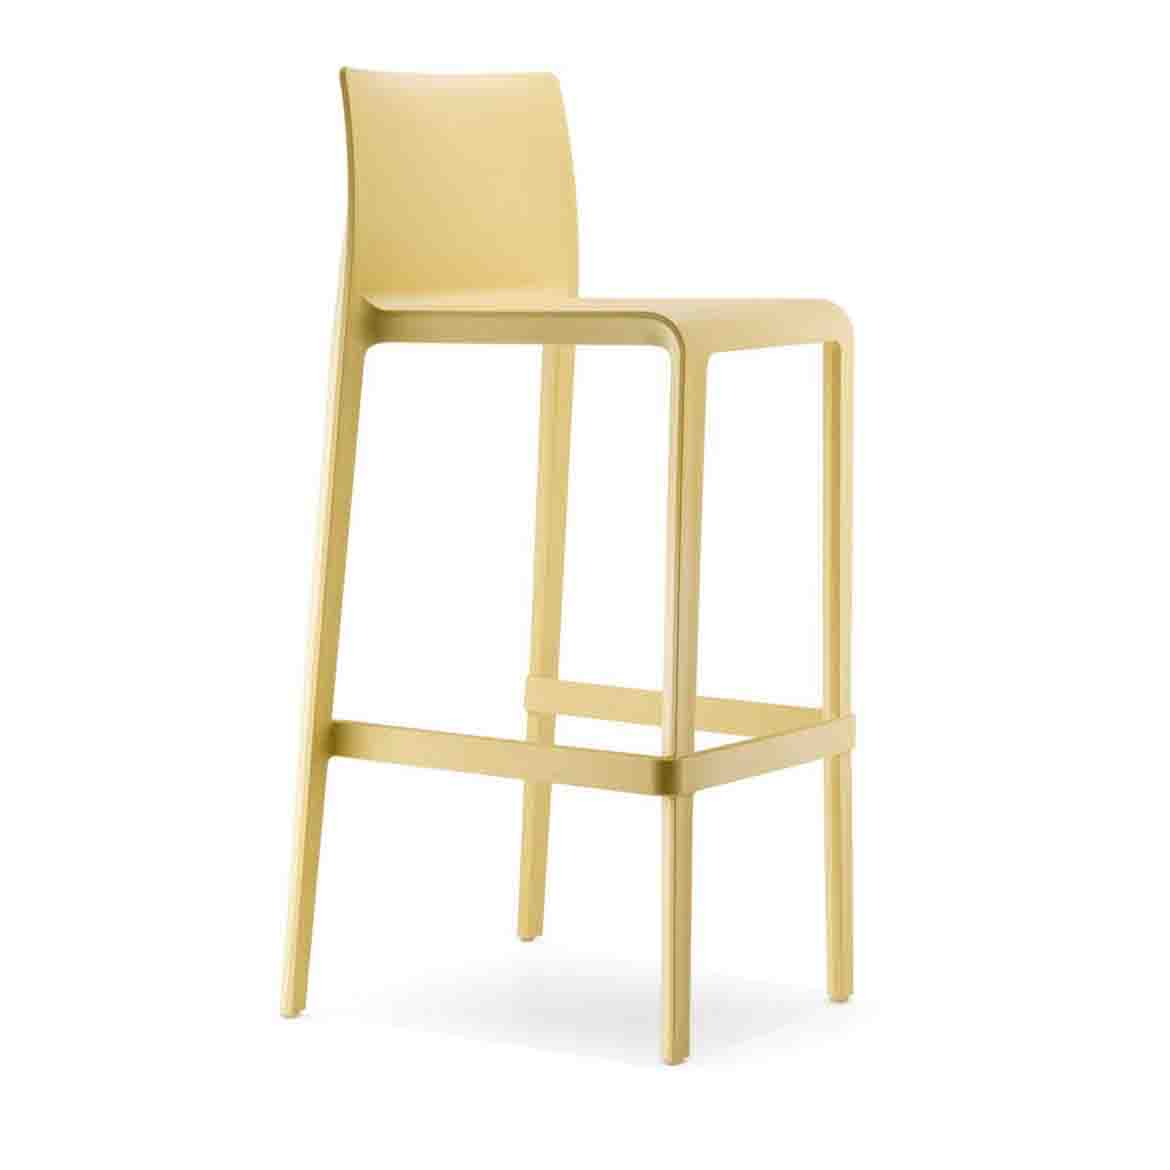 Made of polypropylene, injected with gas air moulding and reinforced by glass fibers, the Volt barstool is available in the same range of colours of the chair. Same as the structure.